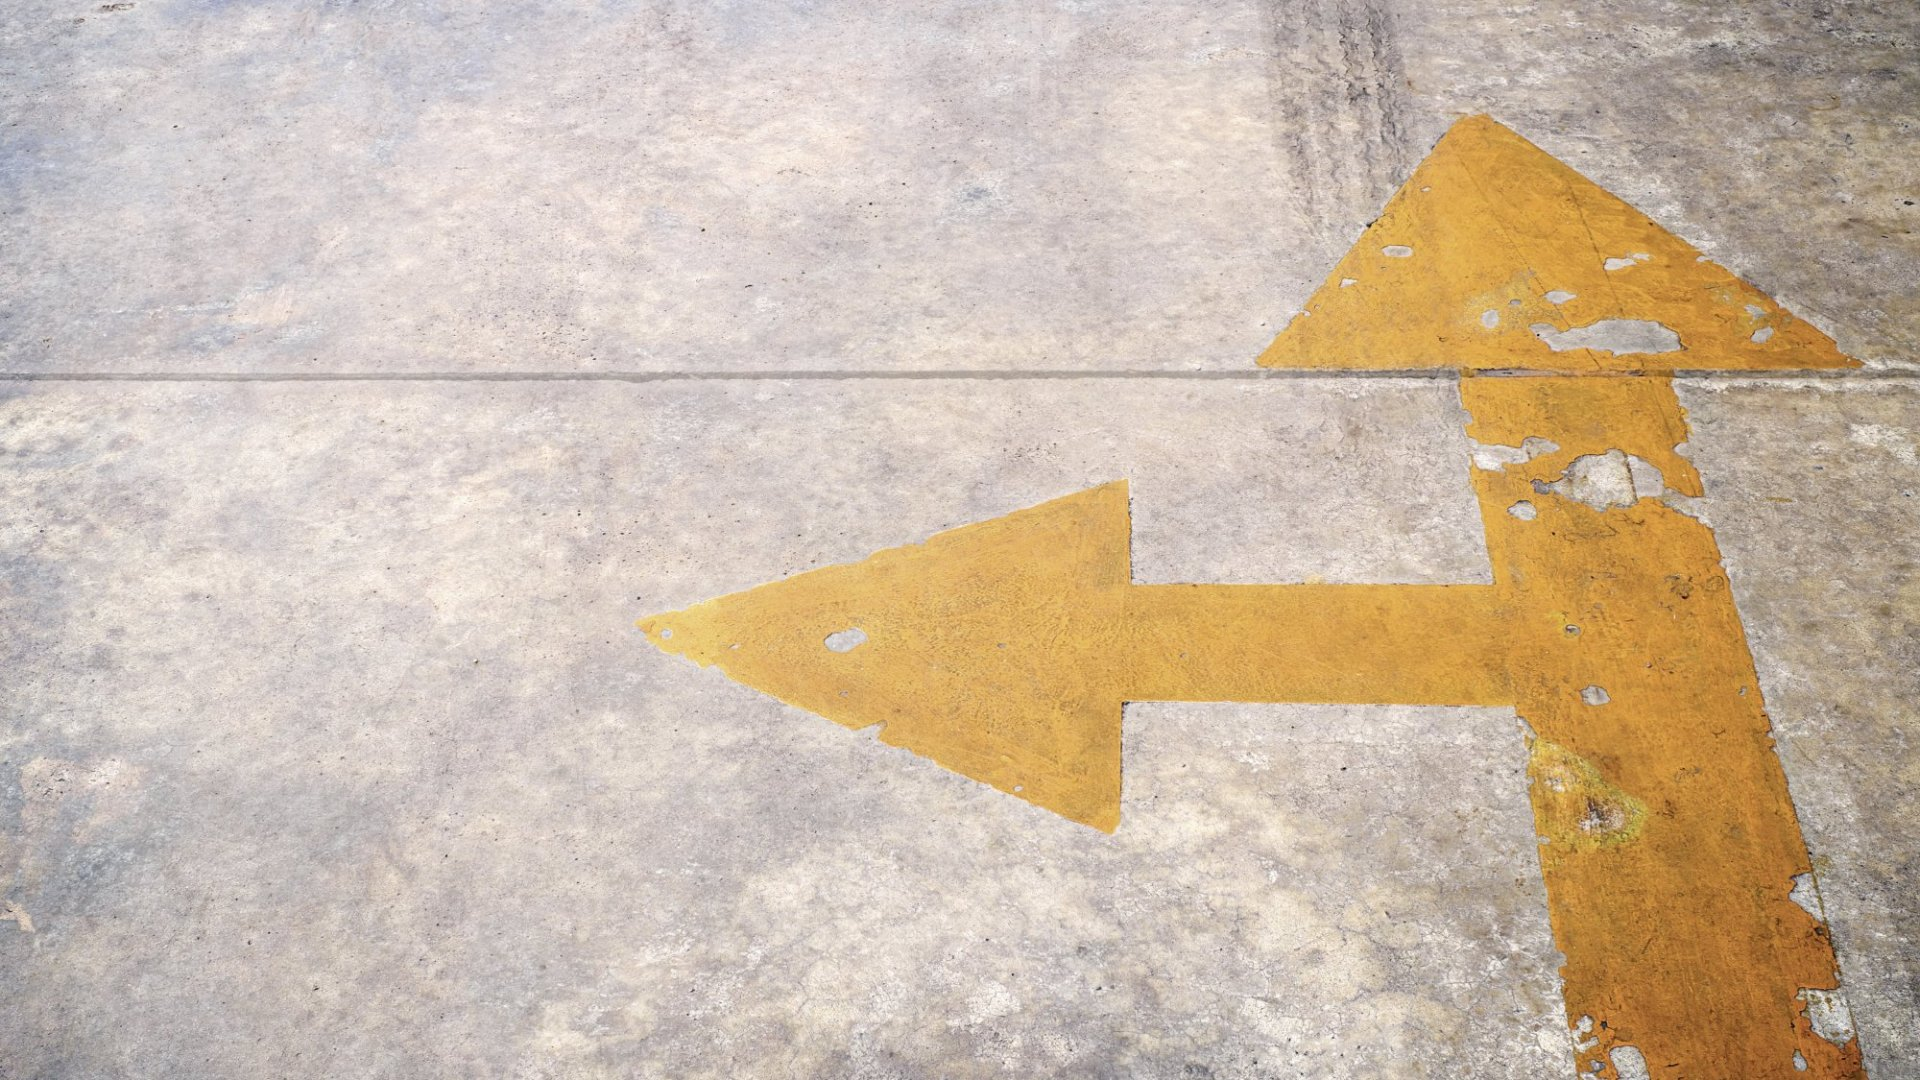 Owning Your Mistakes: 4 Ways to Turn Bad Business Decisions Around